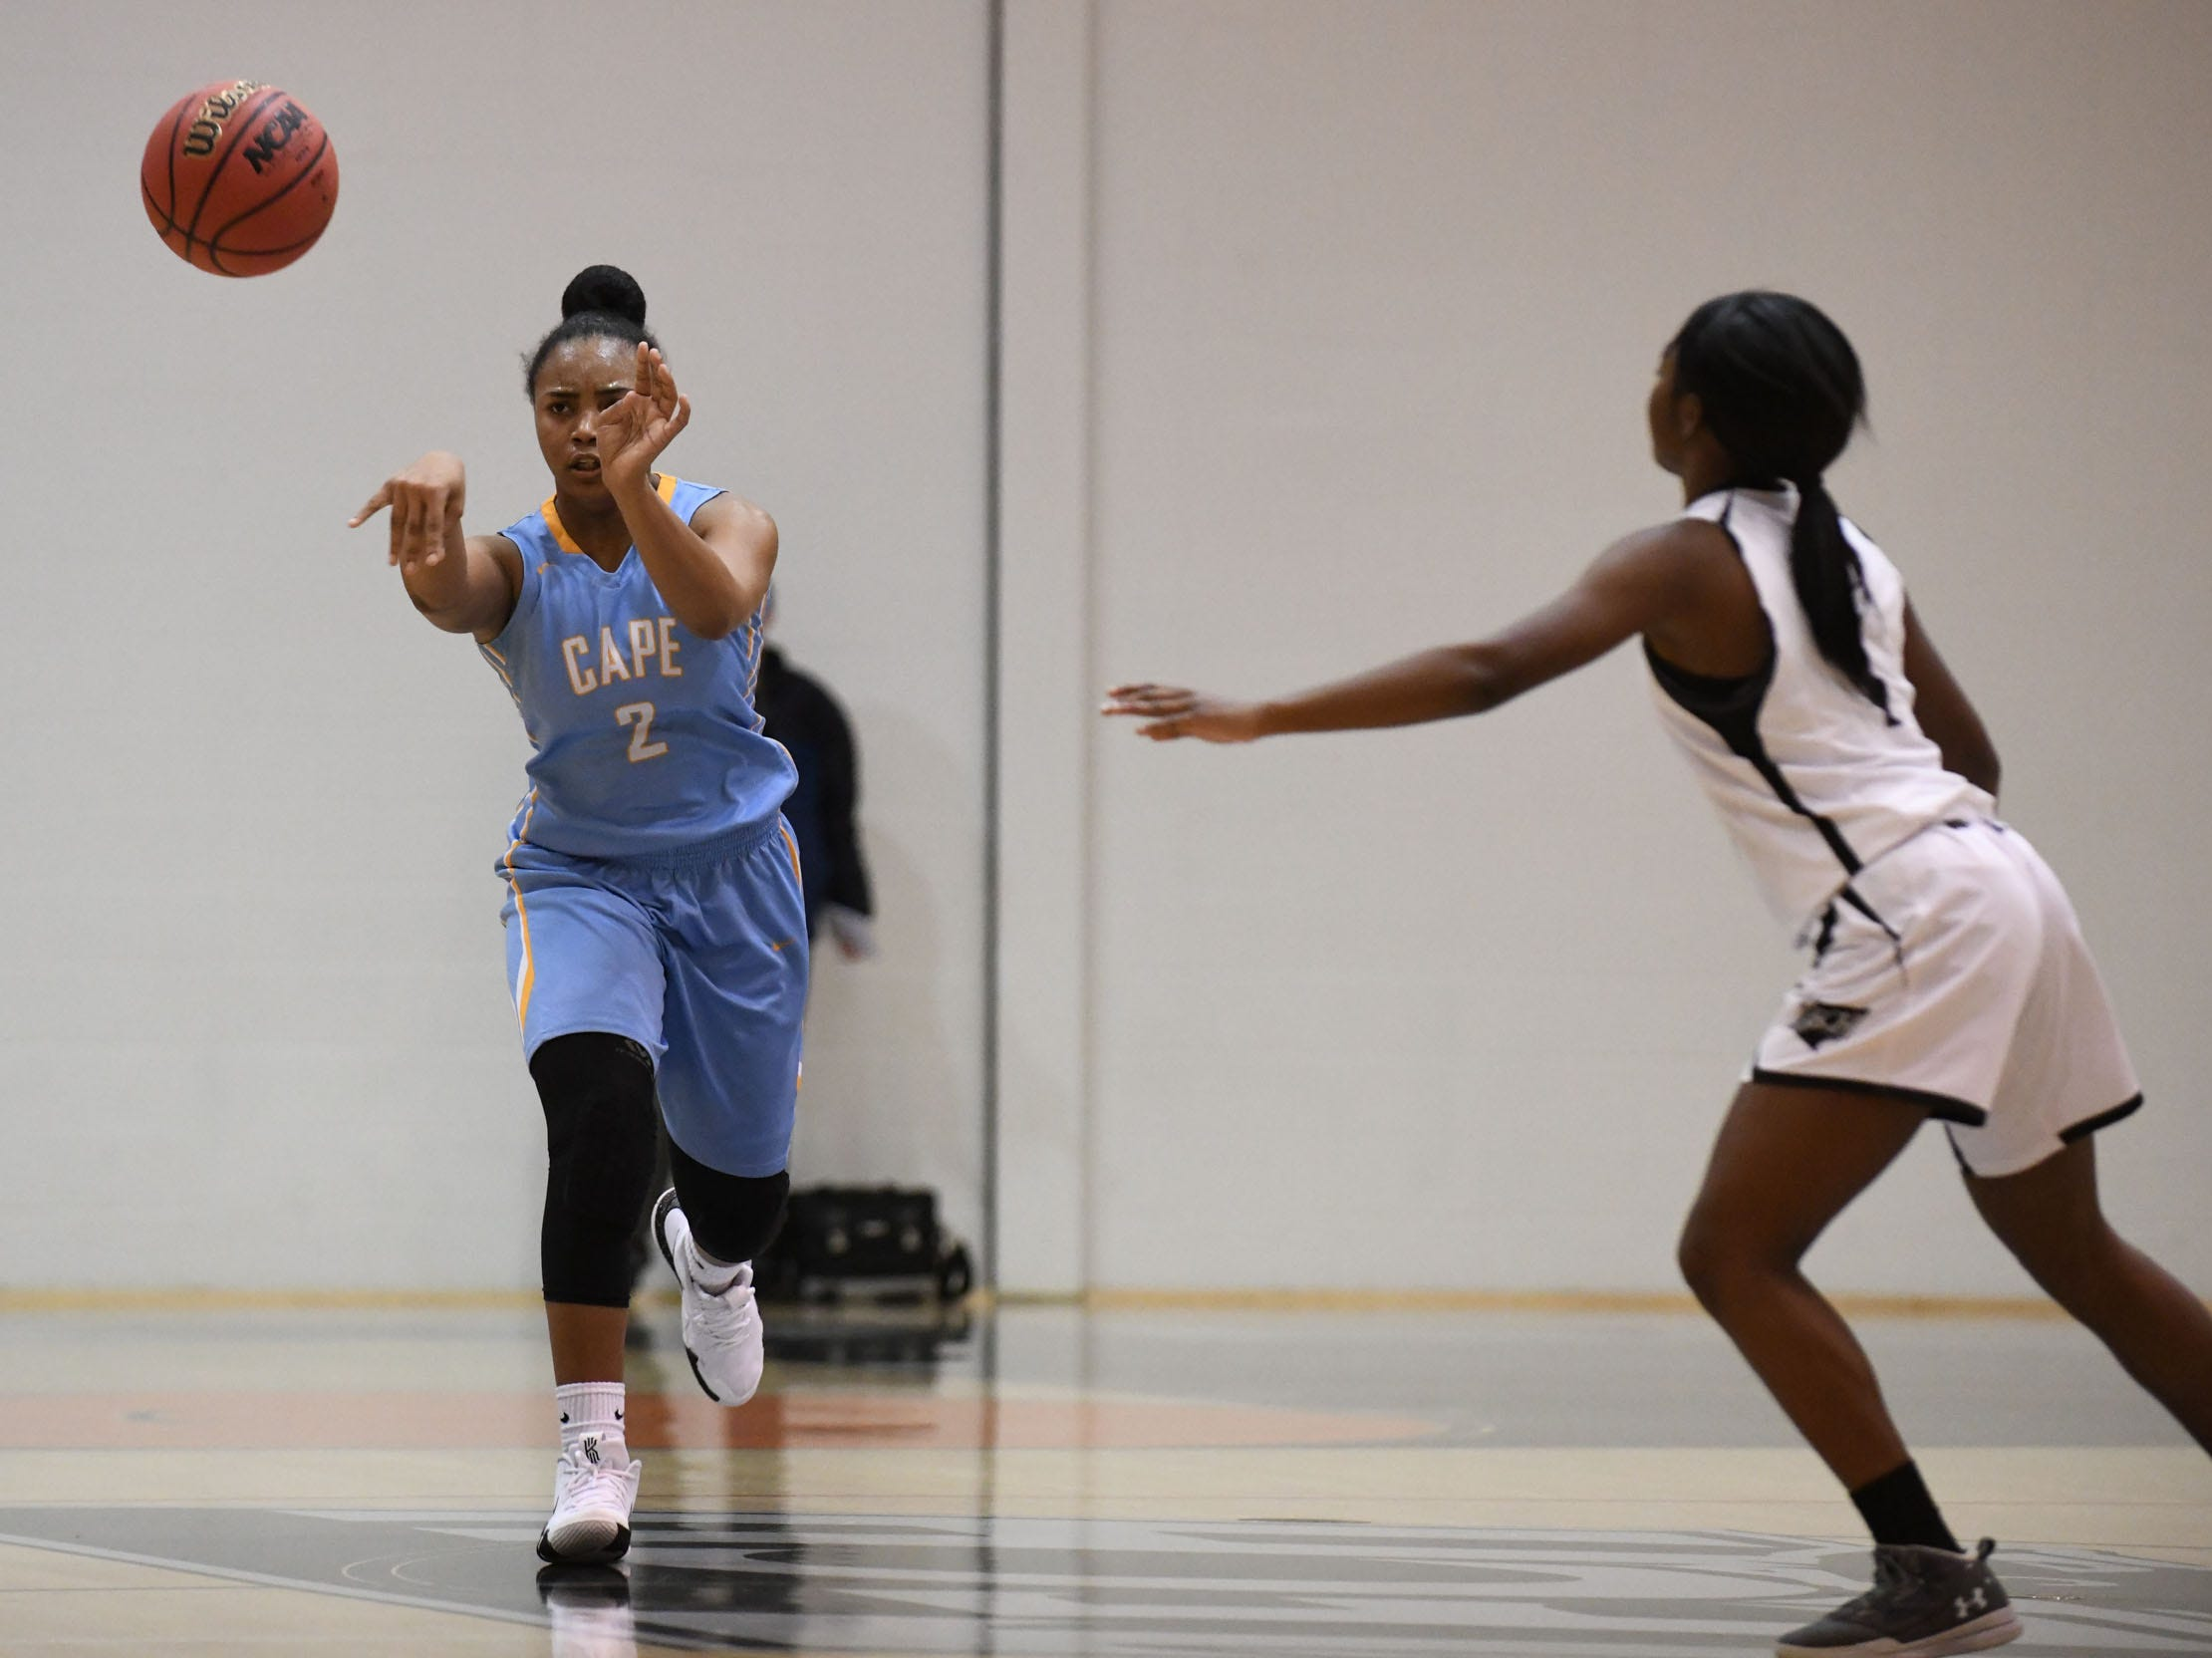 Cape Henlopen's Mehkia Applewhite passes to her teammate against Sussex Tech on Wednesday, Jan. 2, 2019.